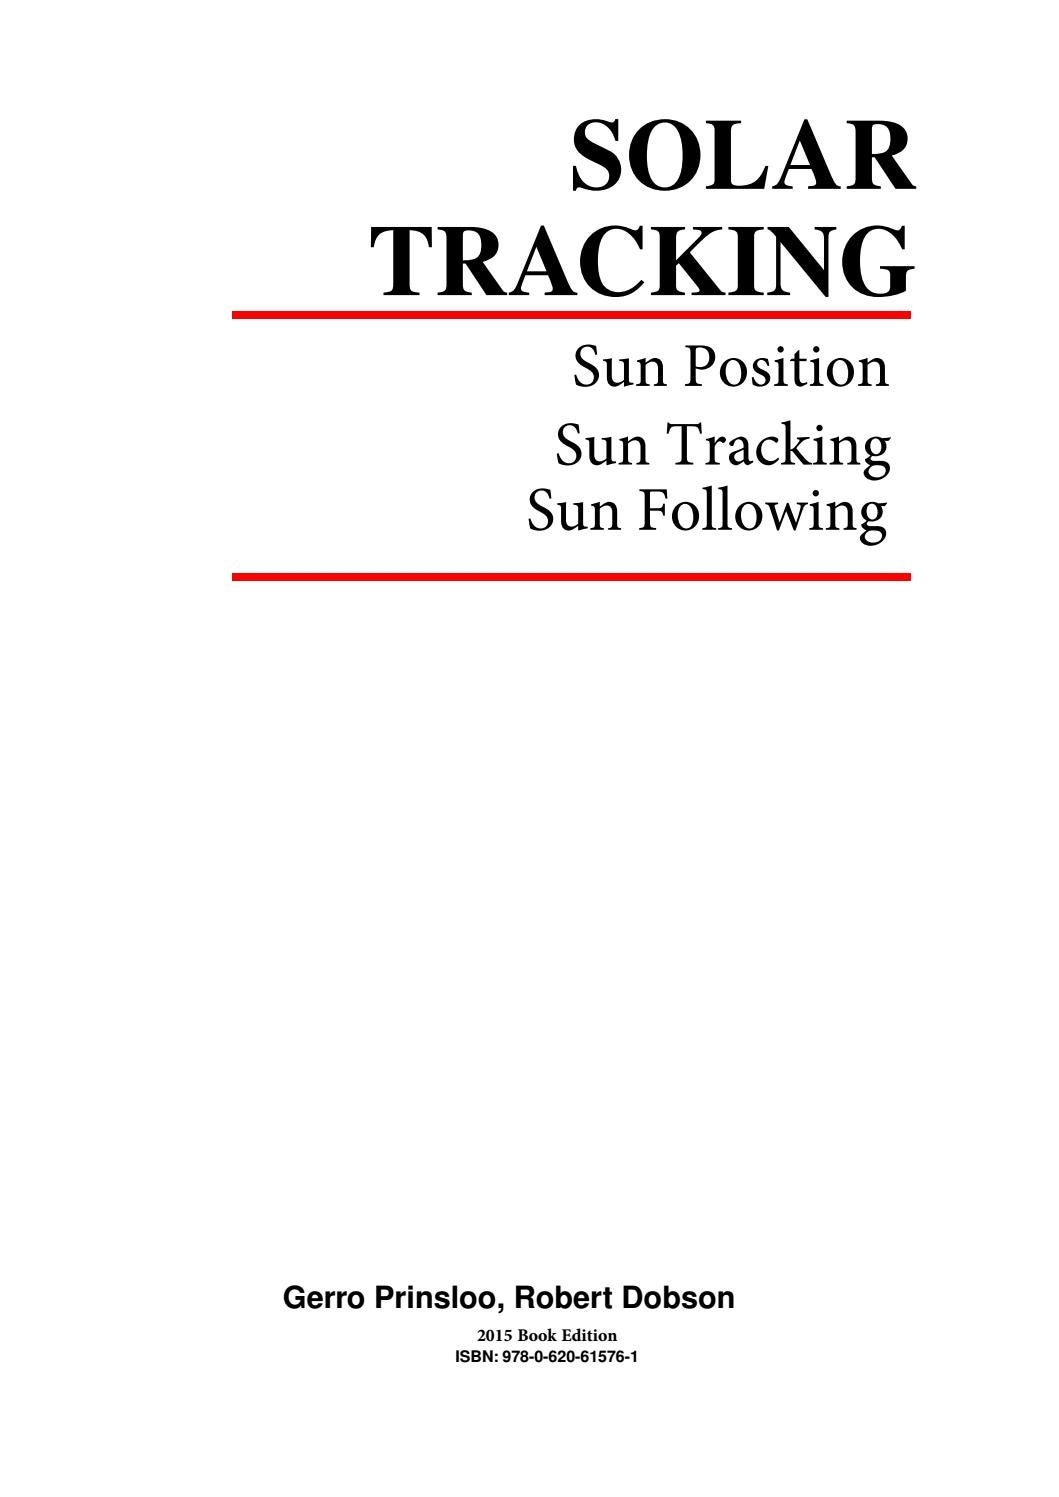 Solar Tracking Hardware n Software eBook by Gerro J Prinsloo